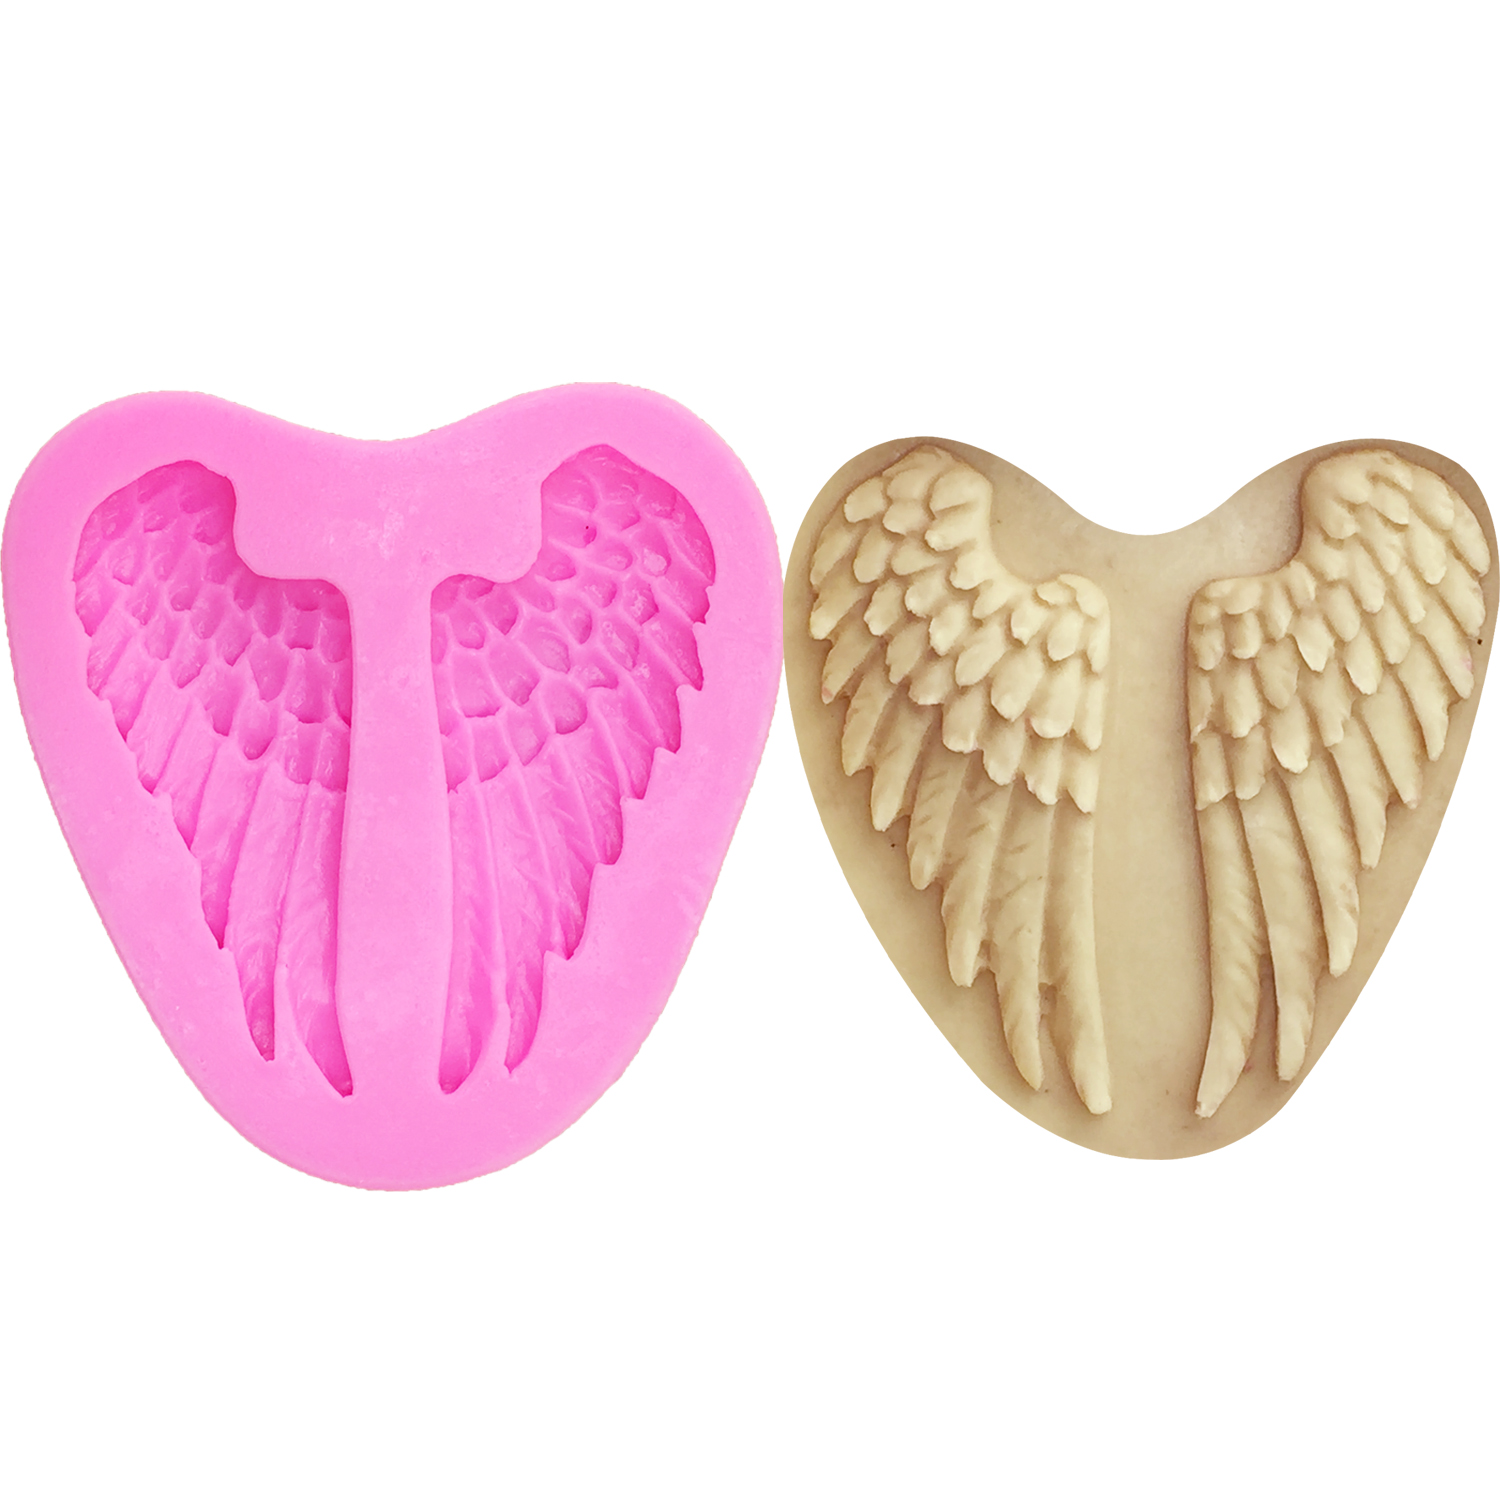 Silicone 3D Angel Baby Wings Fondant Mould Cake Decor Chocolate Baking Mold HY